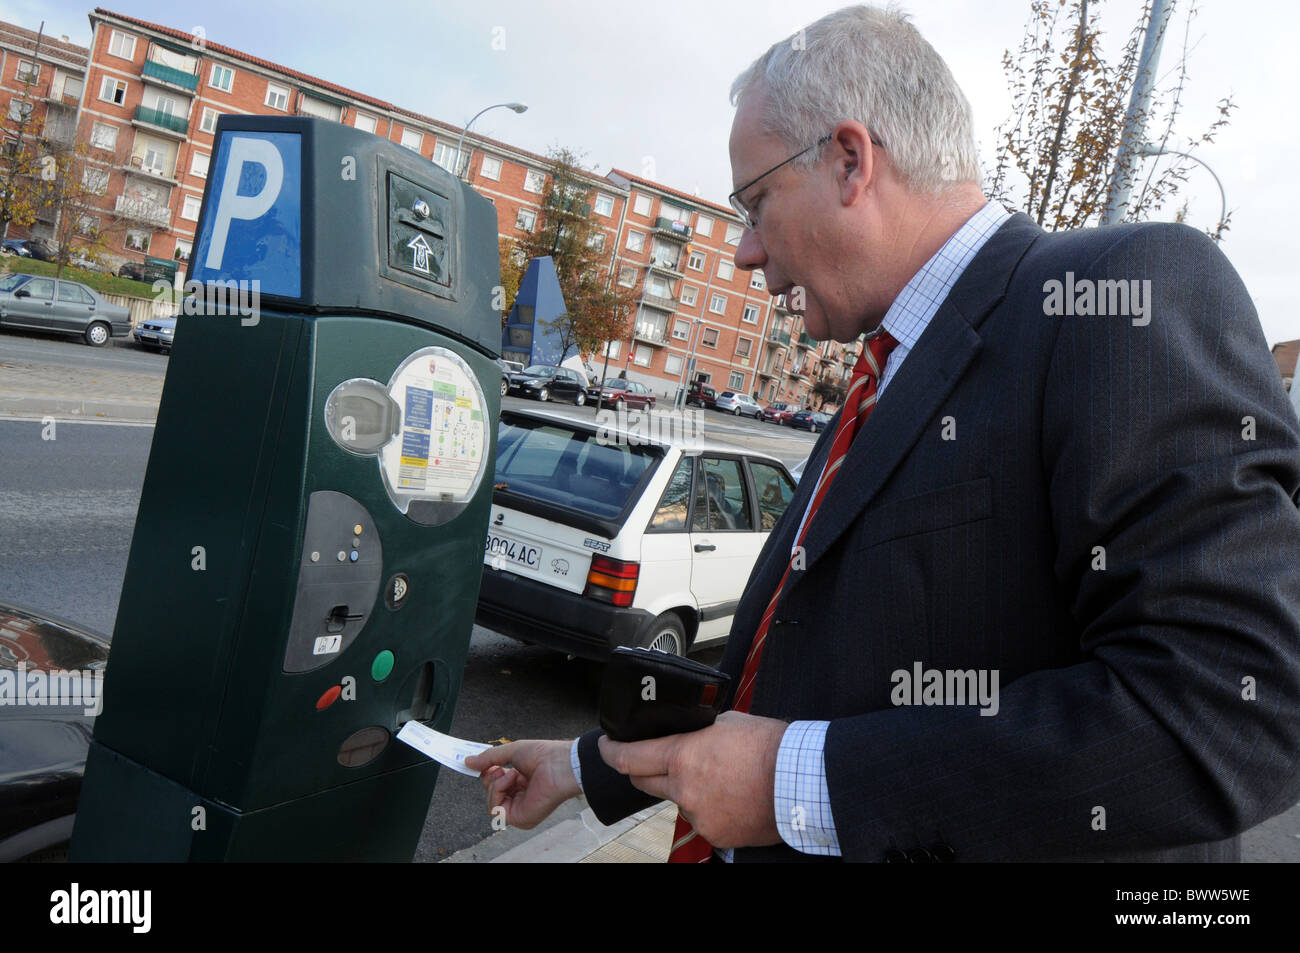 Man buying a parking ticket, Spain - Stock Image